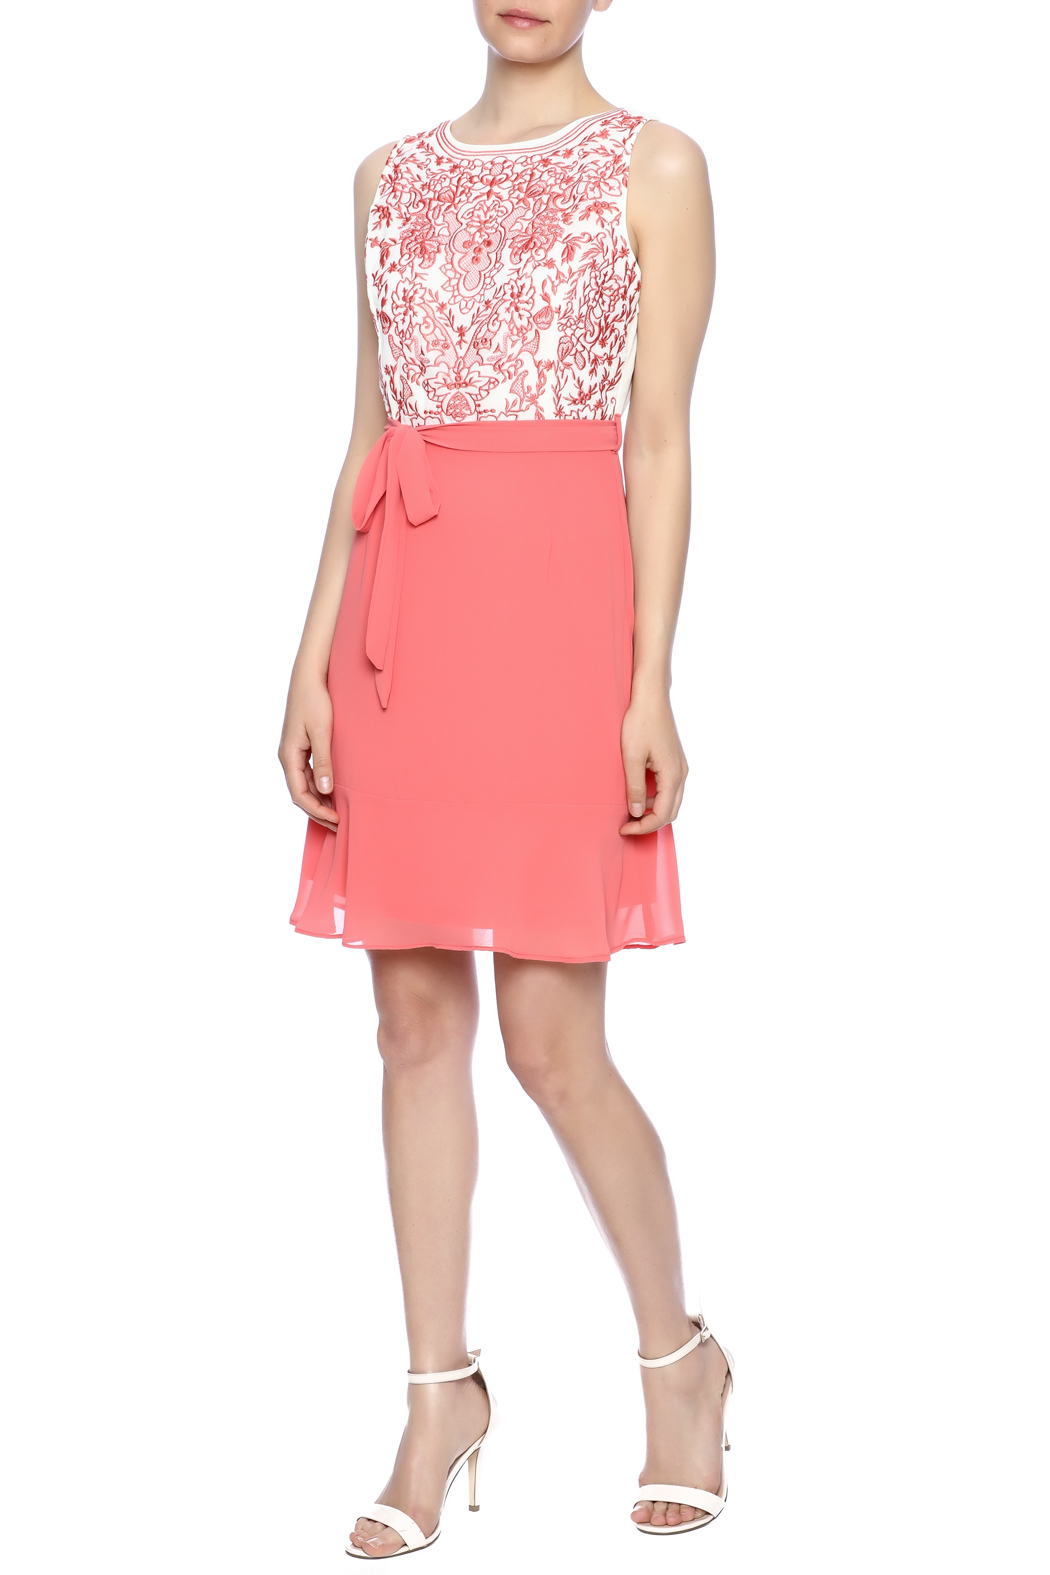 Ya Los Angeles Coral Embroidered Dress - Front Full Image